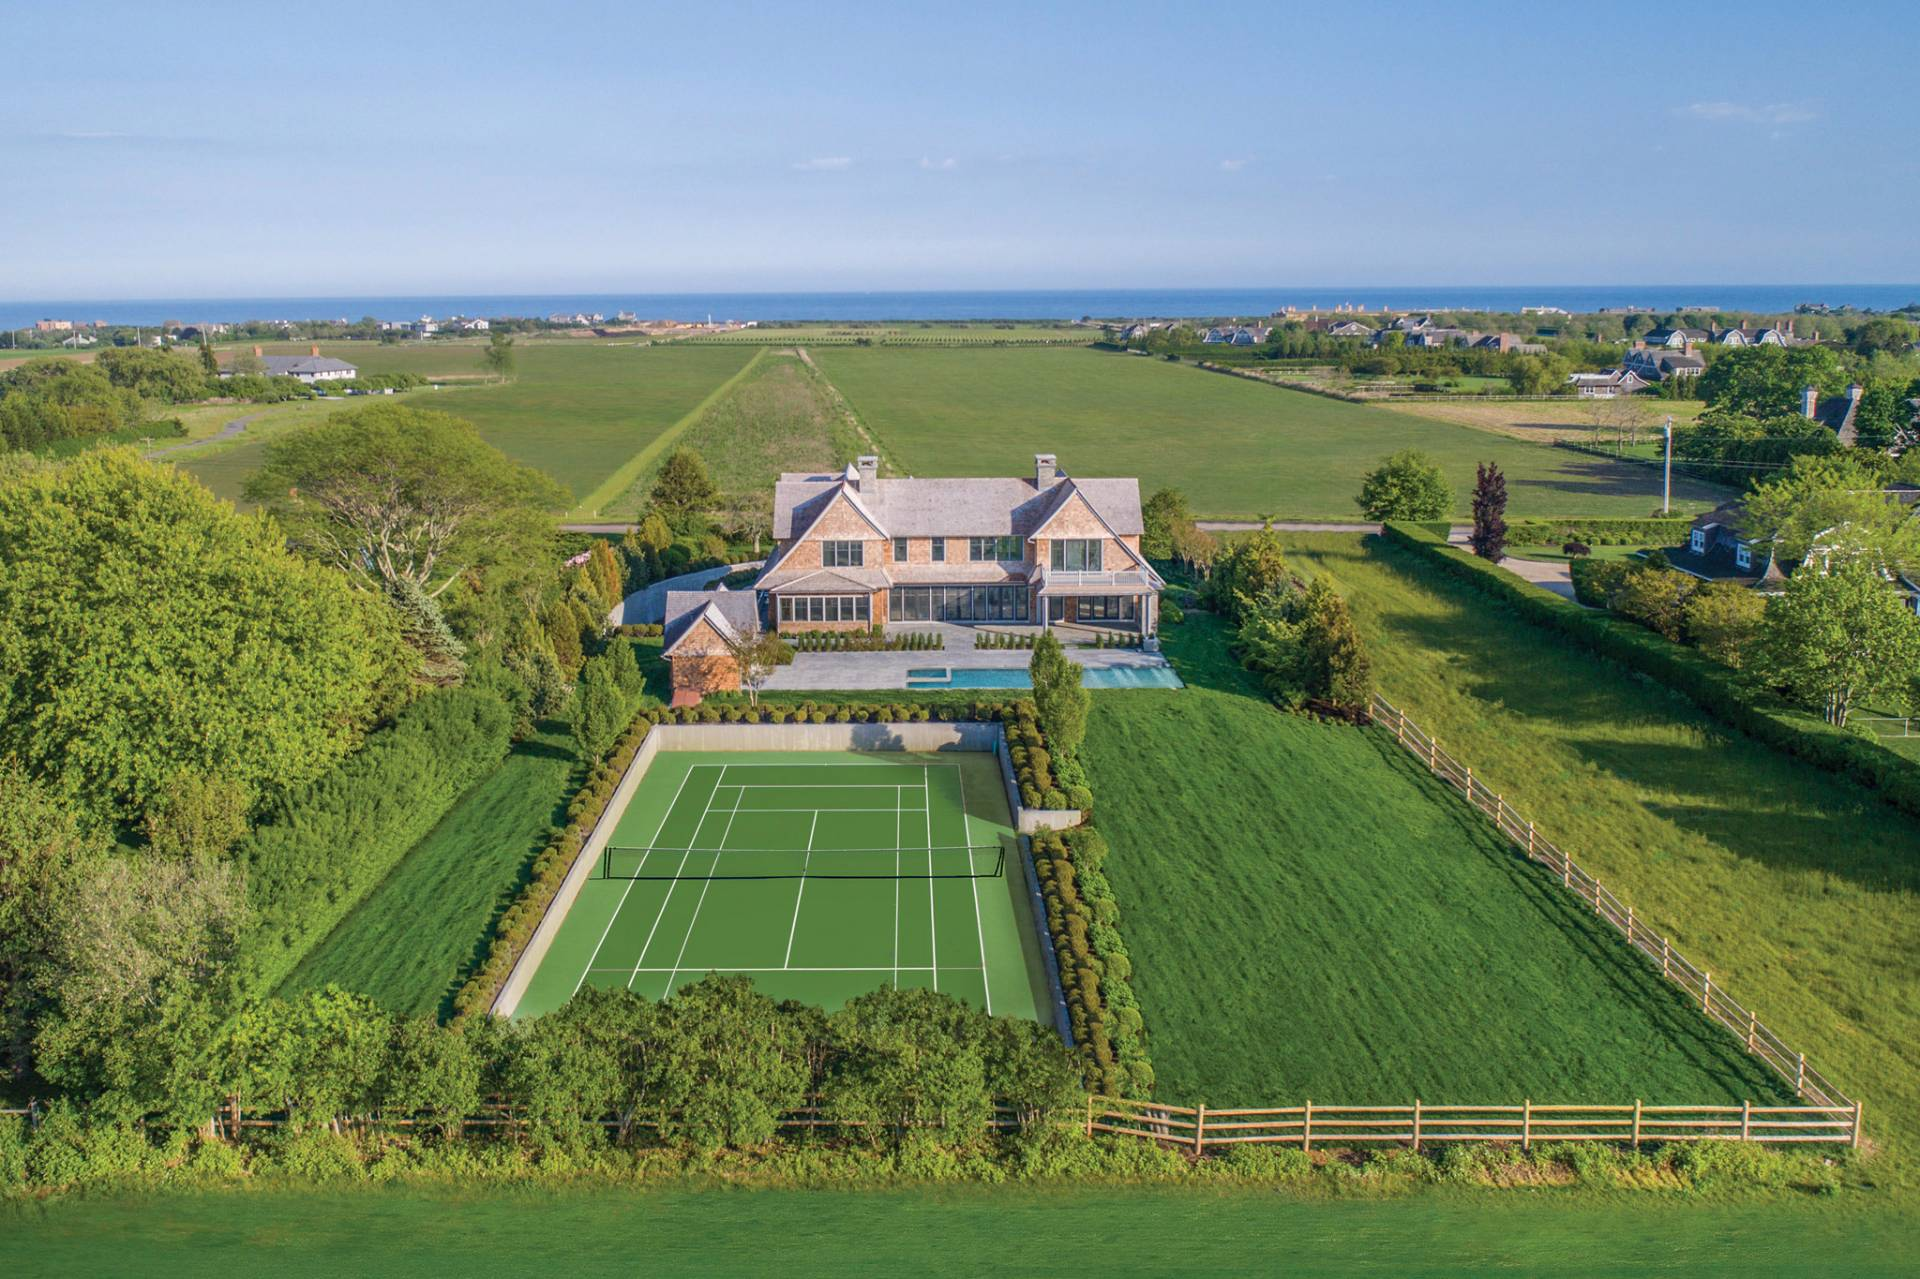 Single Family Home for Sale at Sagaponack Village New Construction 324 Hedges Lane, Sagaponack, New York